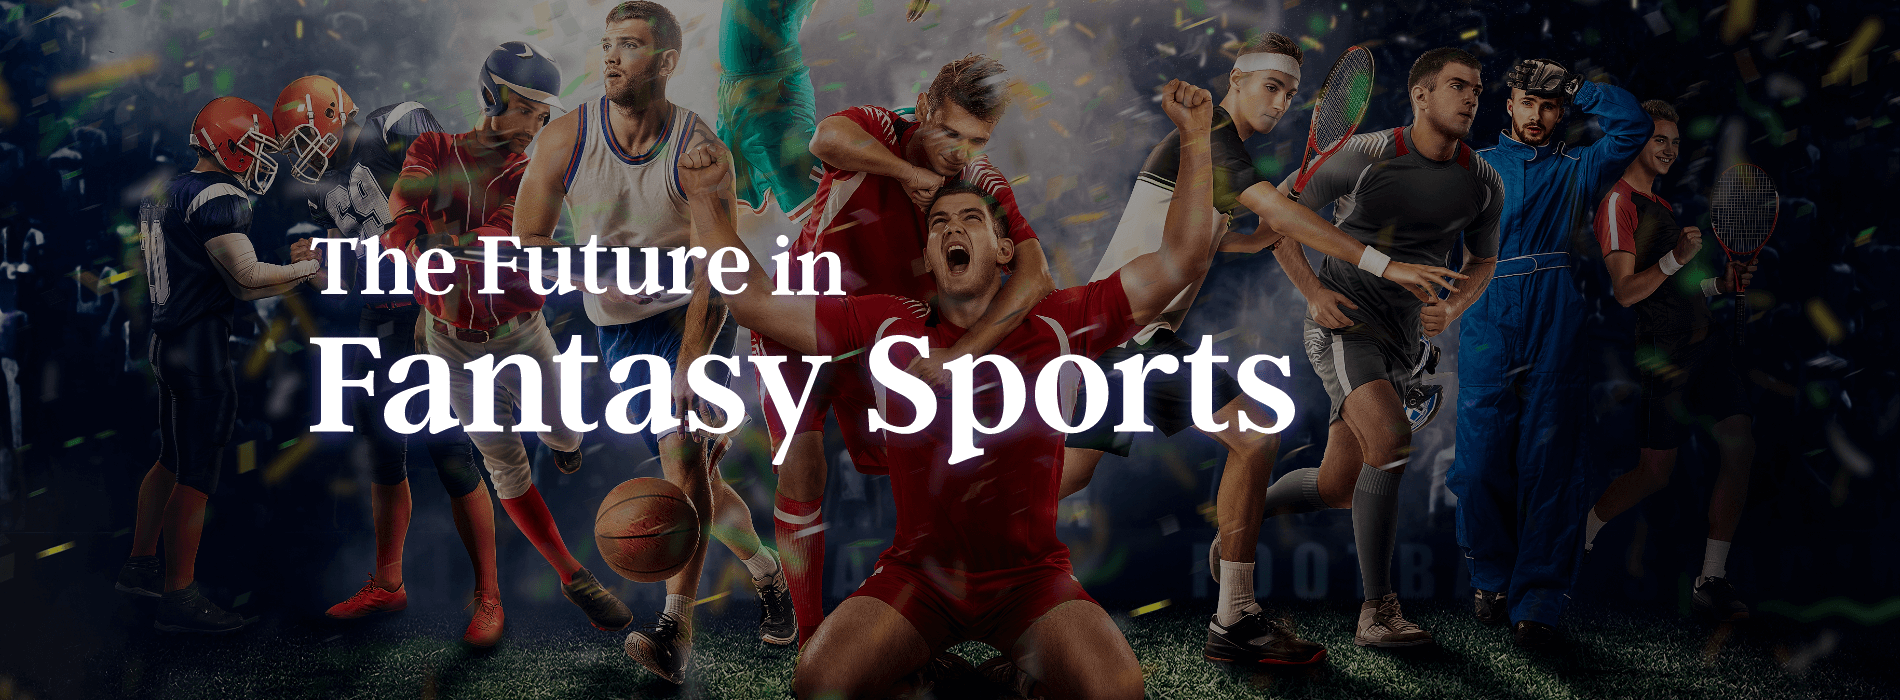 Fantasy Sports:  Statistics, Emerging Trends and Investment Opportunities